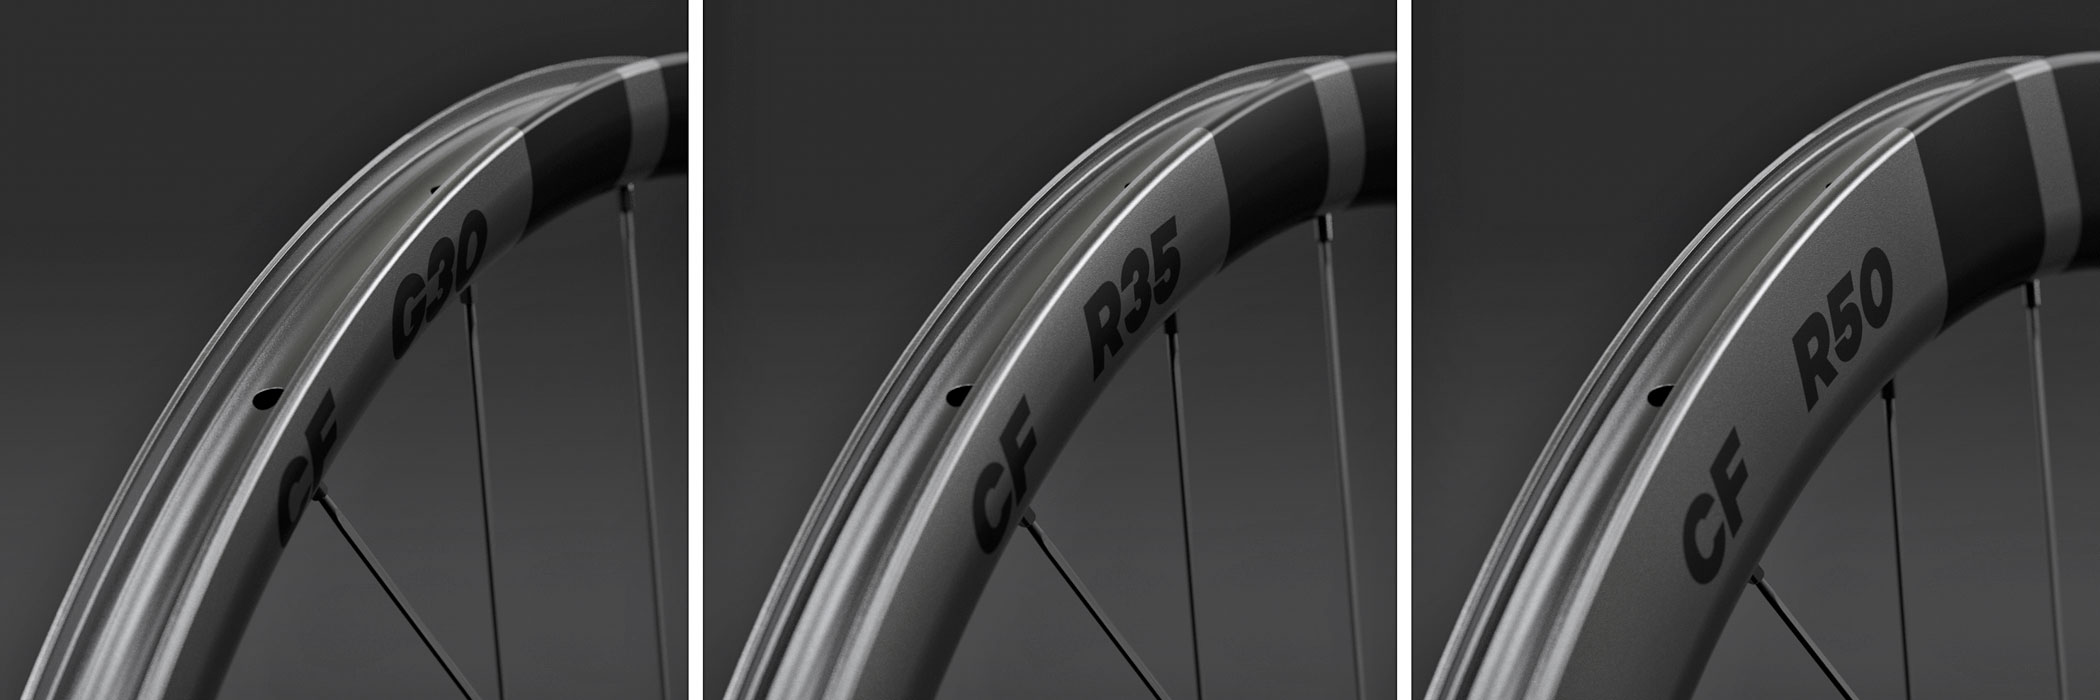 Classified Carbon Wheelsets, gravel & all-road wheels with wireless 2x internal gear hub built-in,tubeless rim profiles